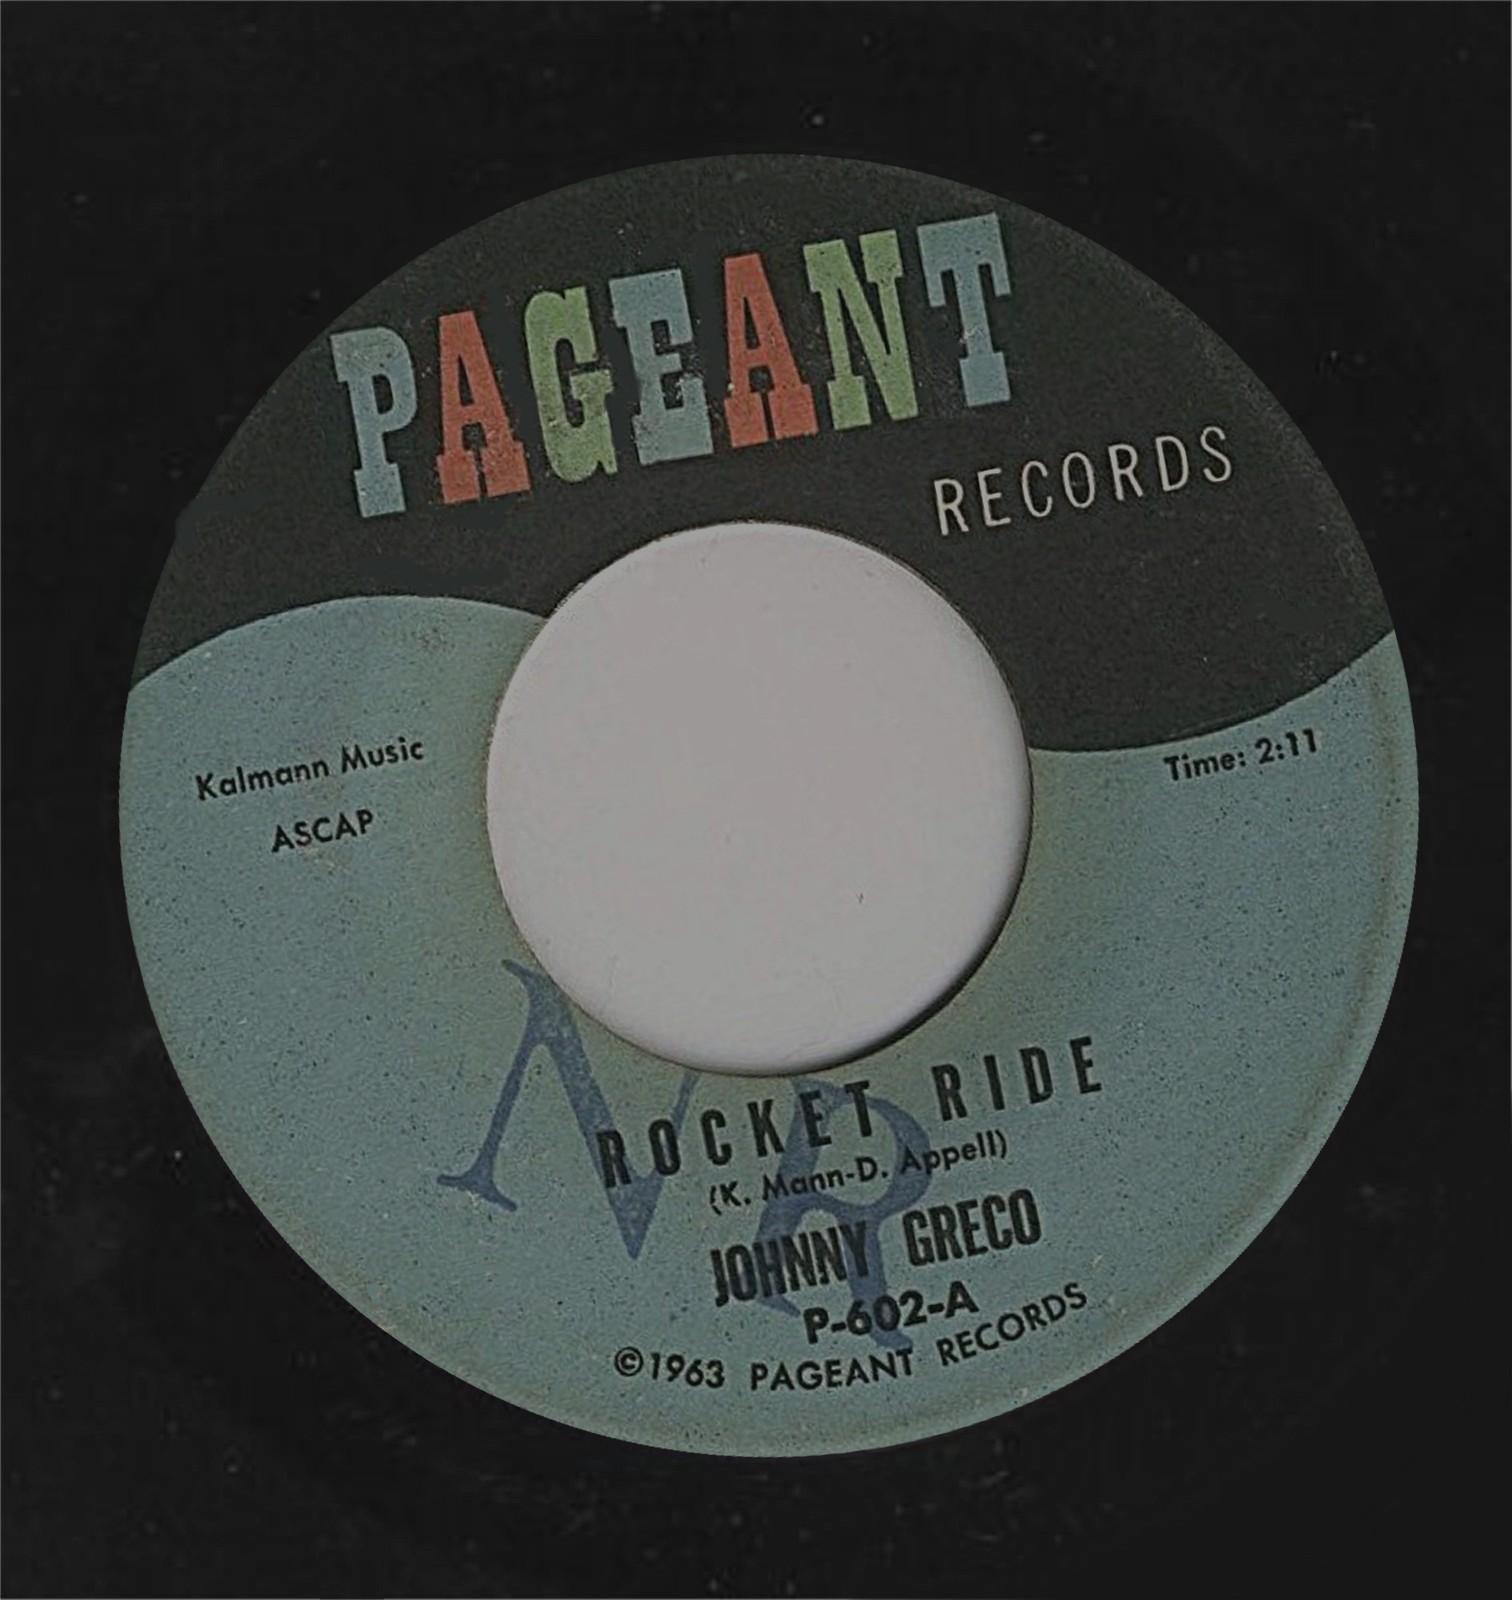 Ride for pageant records a subsidiary label of cameo parkway records